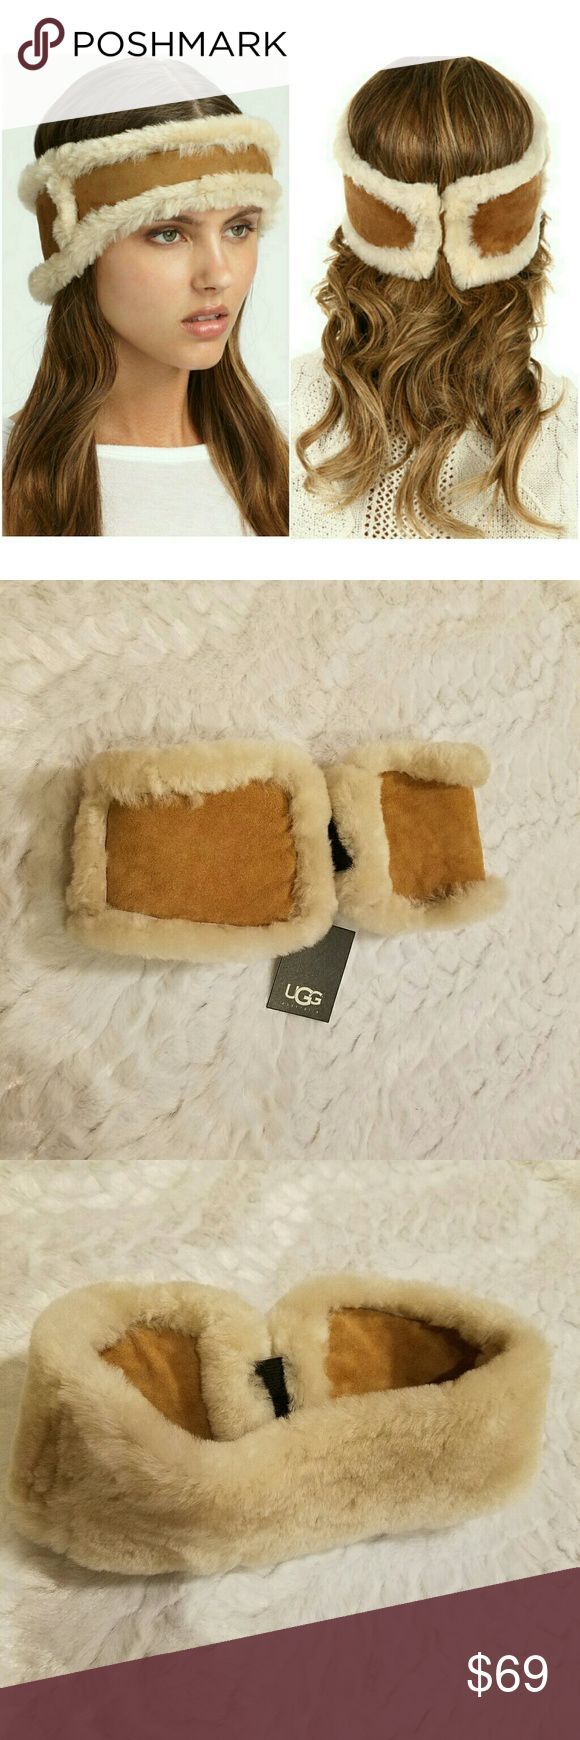 NEW UGG Nubuck and Shearling Headband New with tags on, never been worn, no defects One size fits all Elastic at back helps with fit Super soft and cozy Very warm!! Covers your ears!  But doesn't ruin your hair!!  Ugg sign is worn toward the front, will be right in the middle of the forehead UGG Accessories Hats